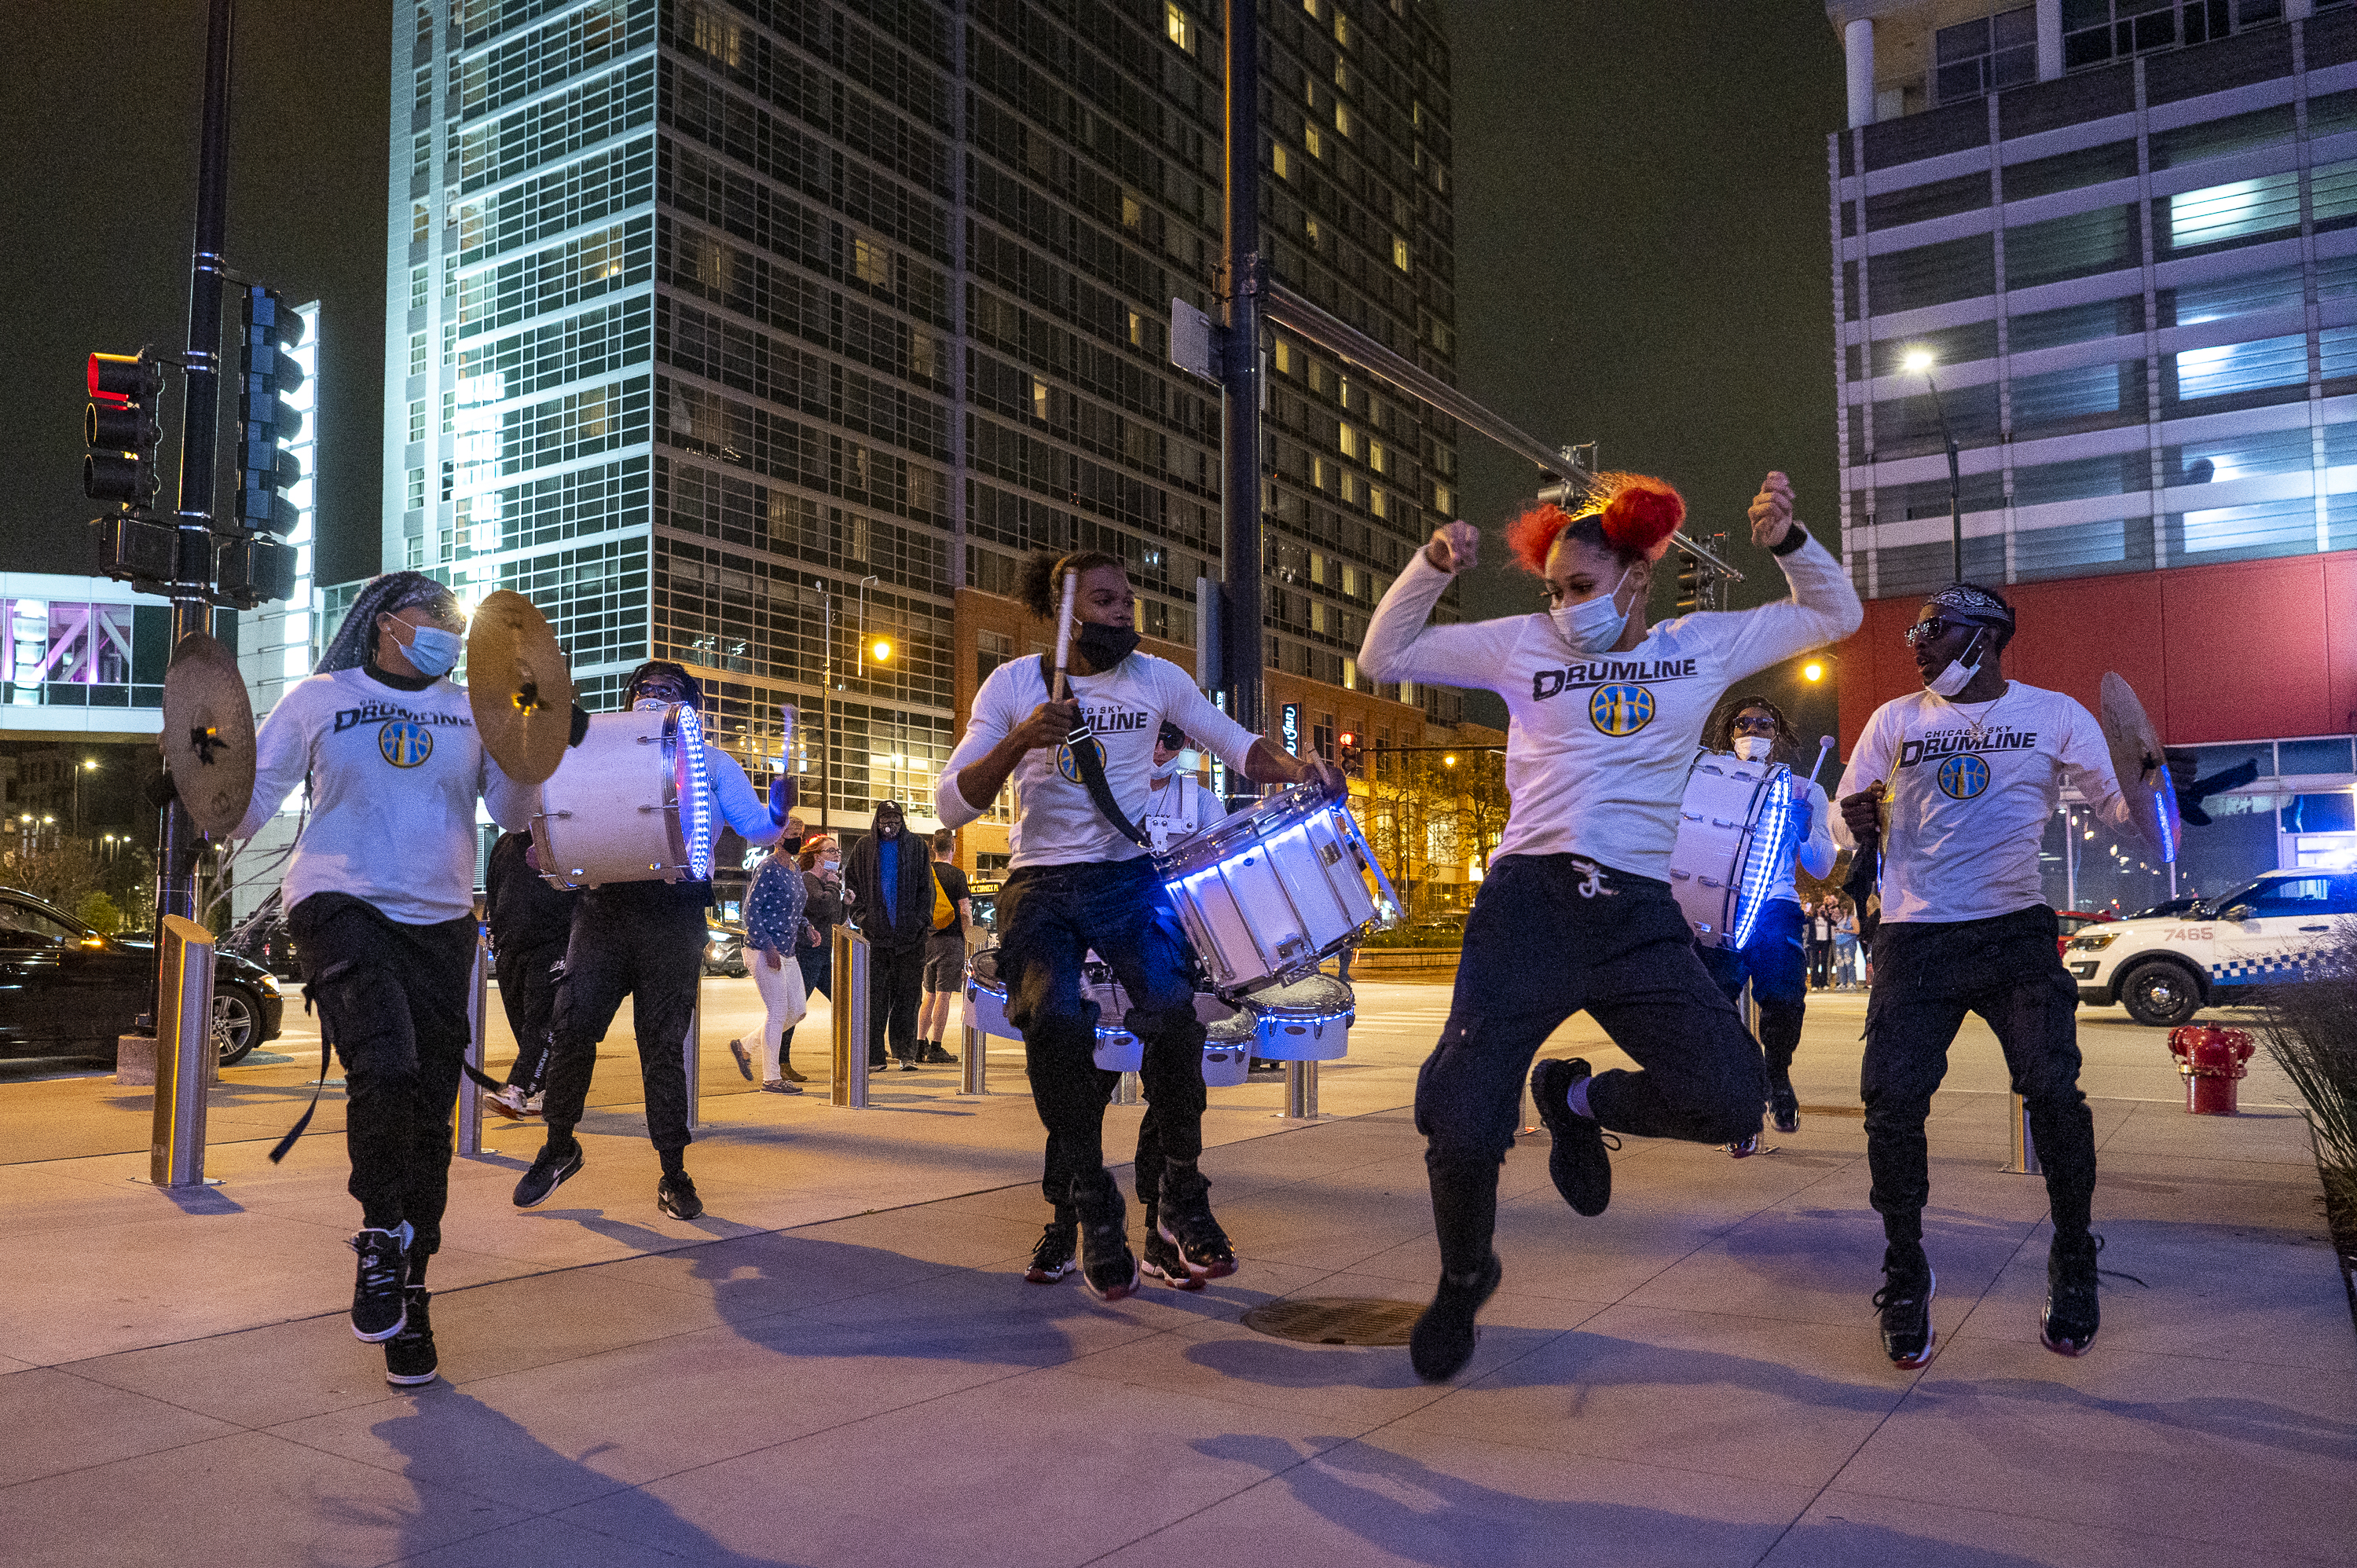 The Chicago Sky Drumline performs outside the Wintrust Arena, before game 3 of the WNBA finals